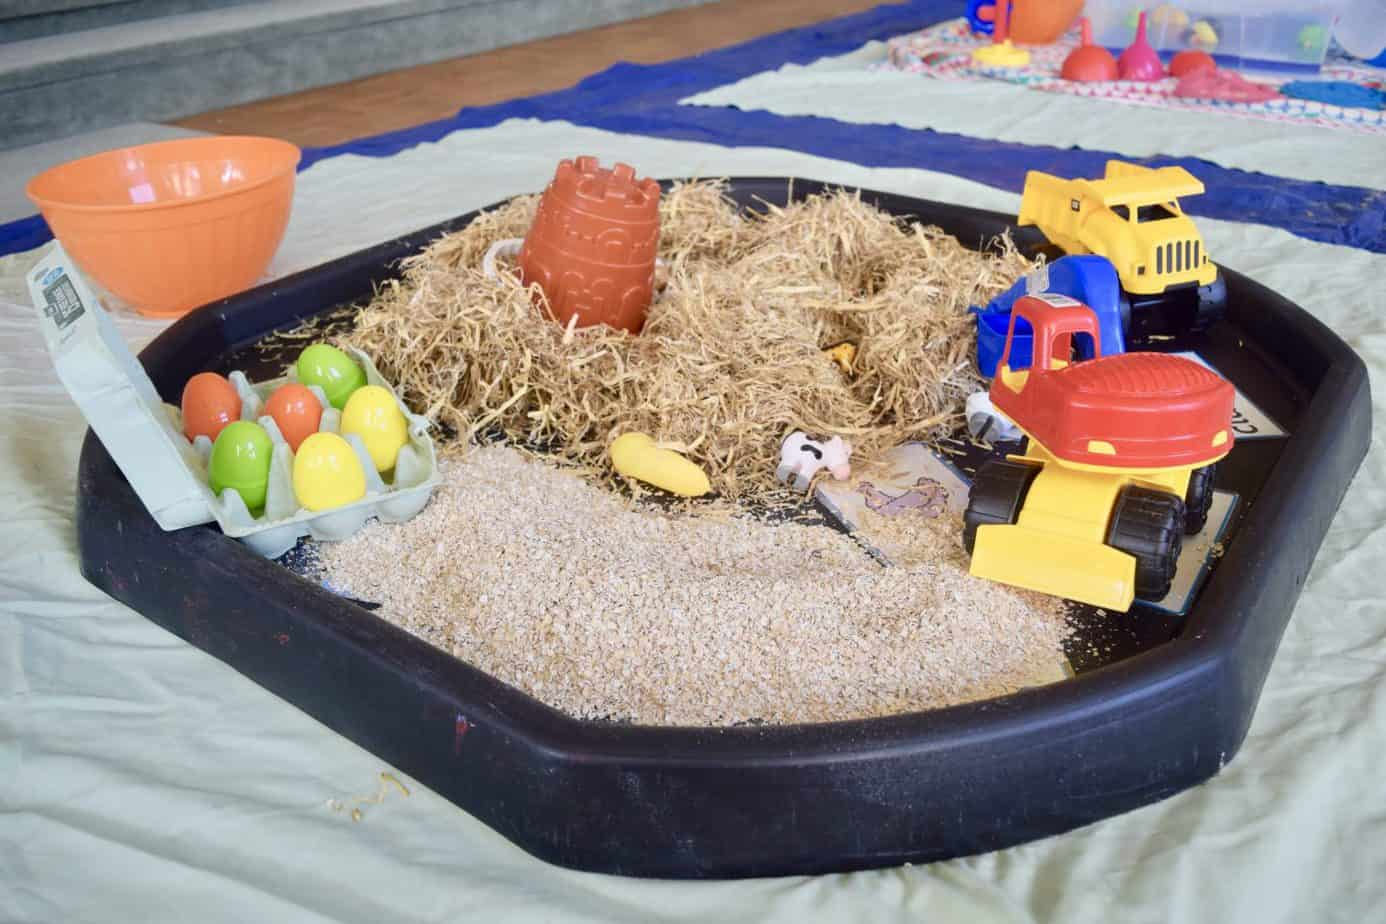 hay and straw playset at Arty splats